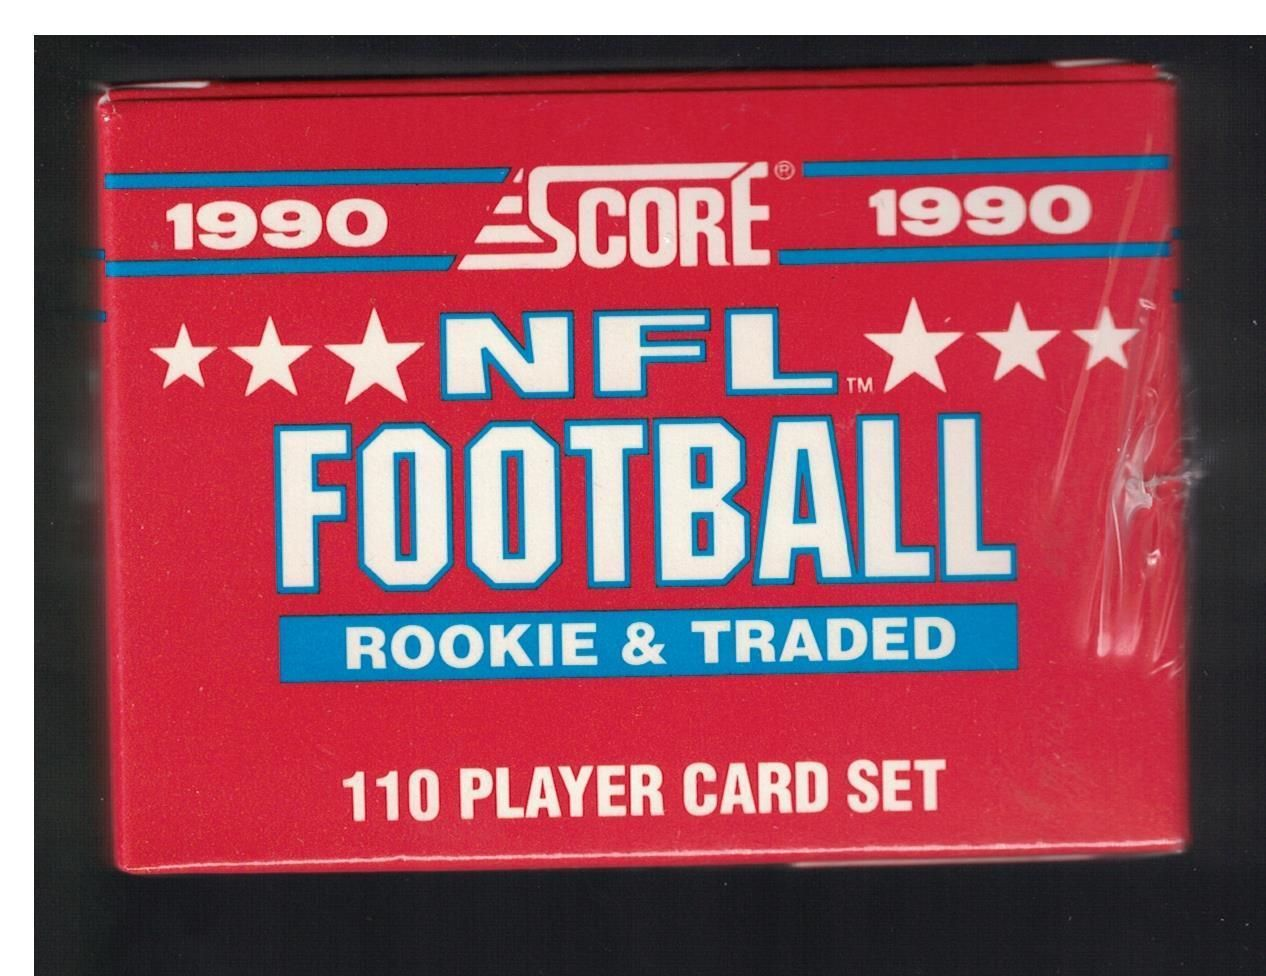 1990 score rookie traded nfl footbal factory set with